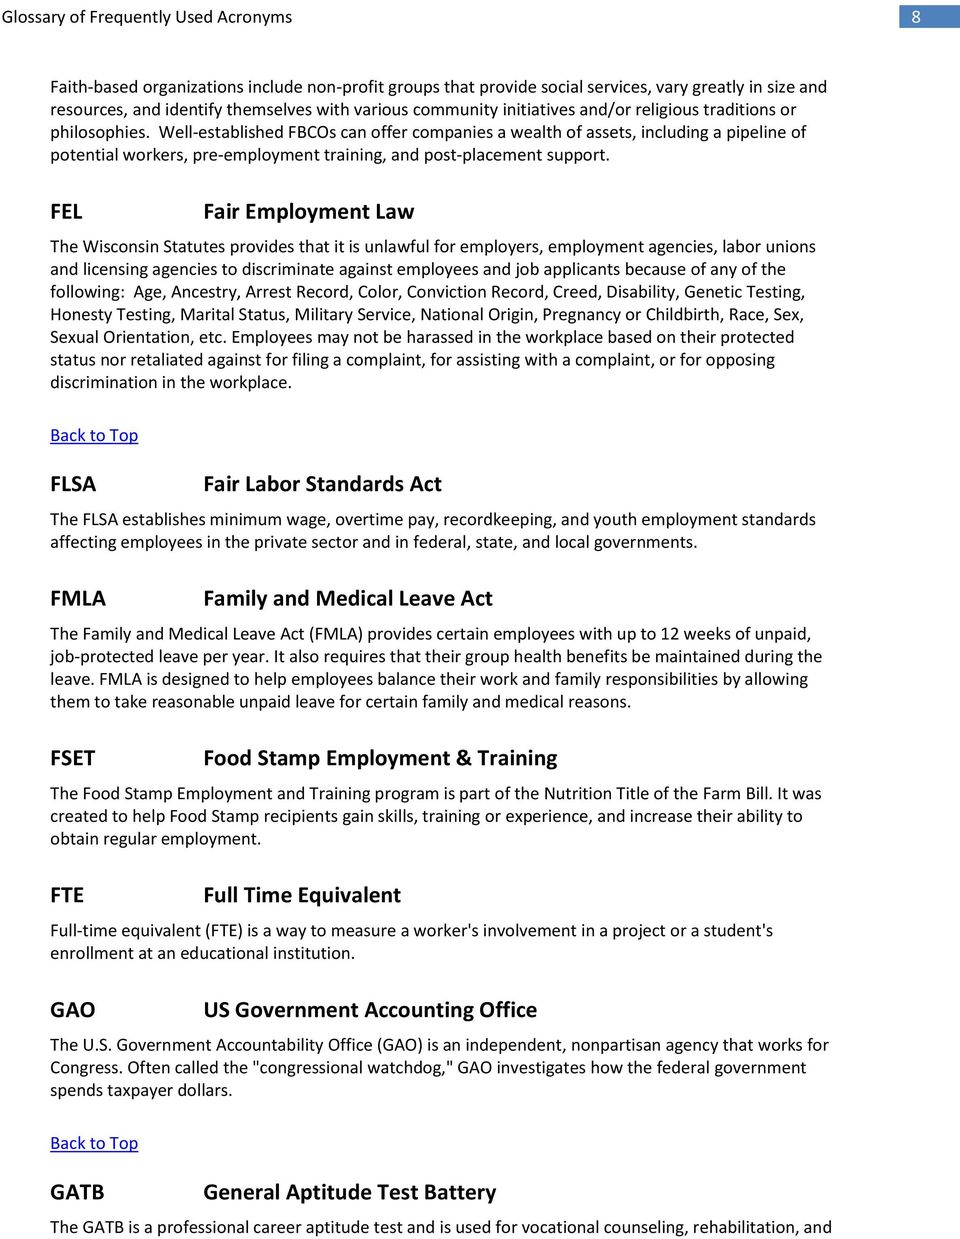 FEL Fair Employment Law The Wisconsin Statutes provides that it is unlawful for employers, employment agencies, labor unions and licensing agencies to discriminate against employees and job